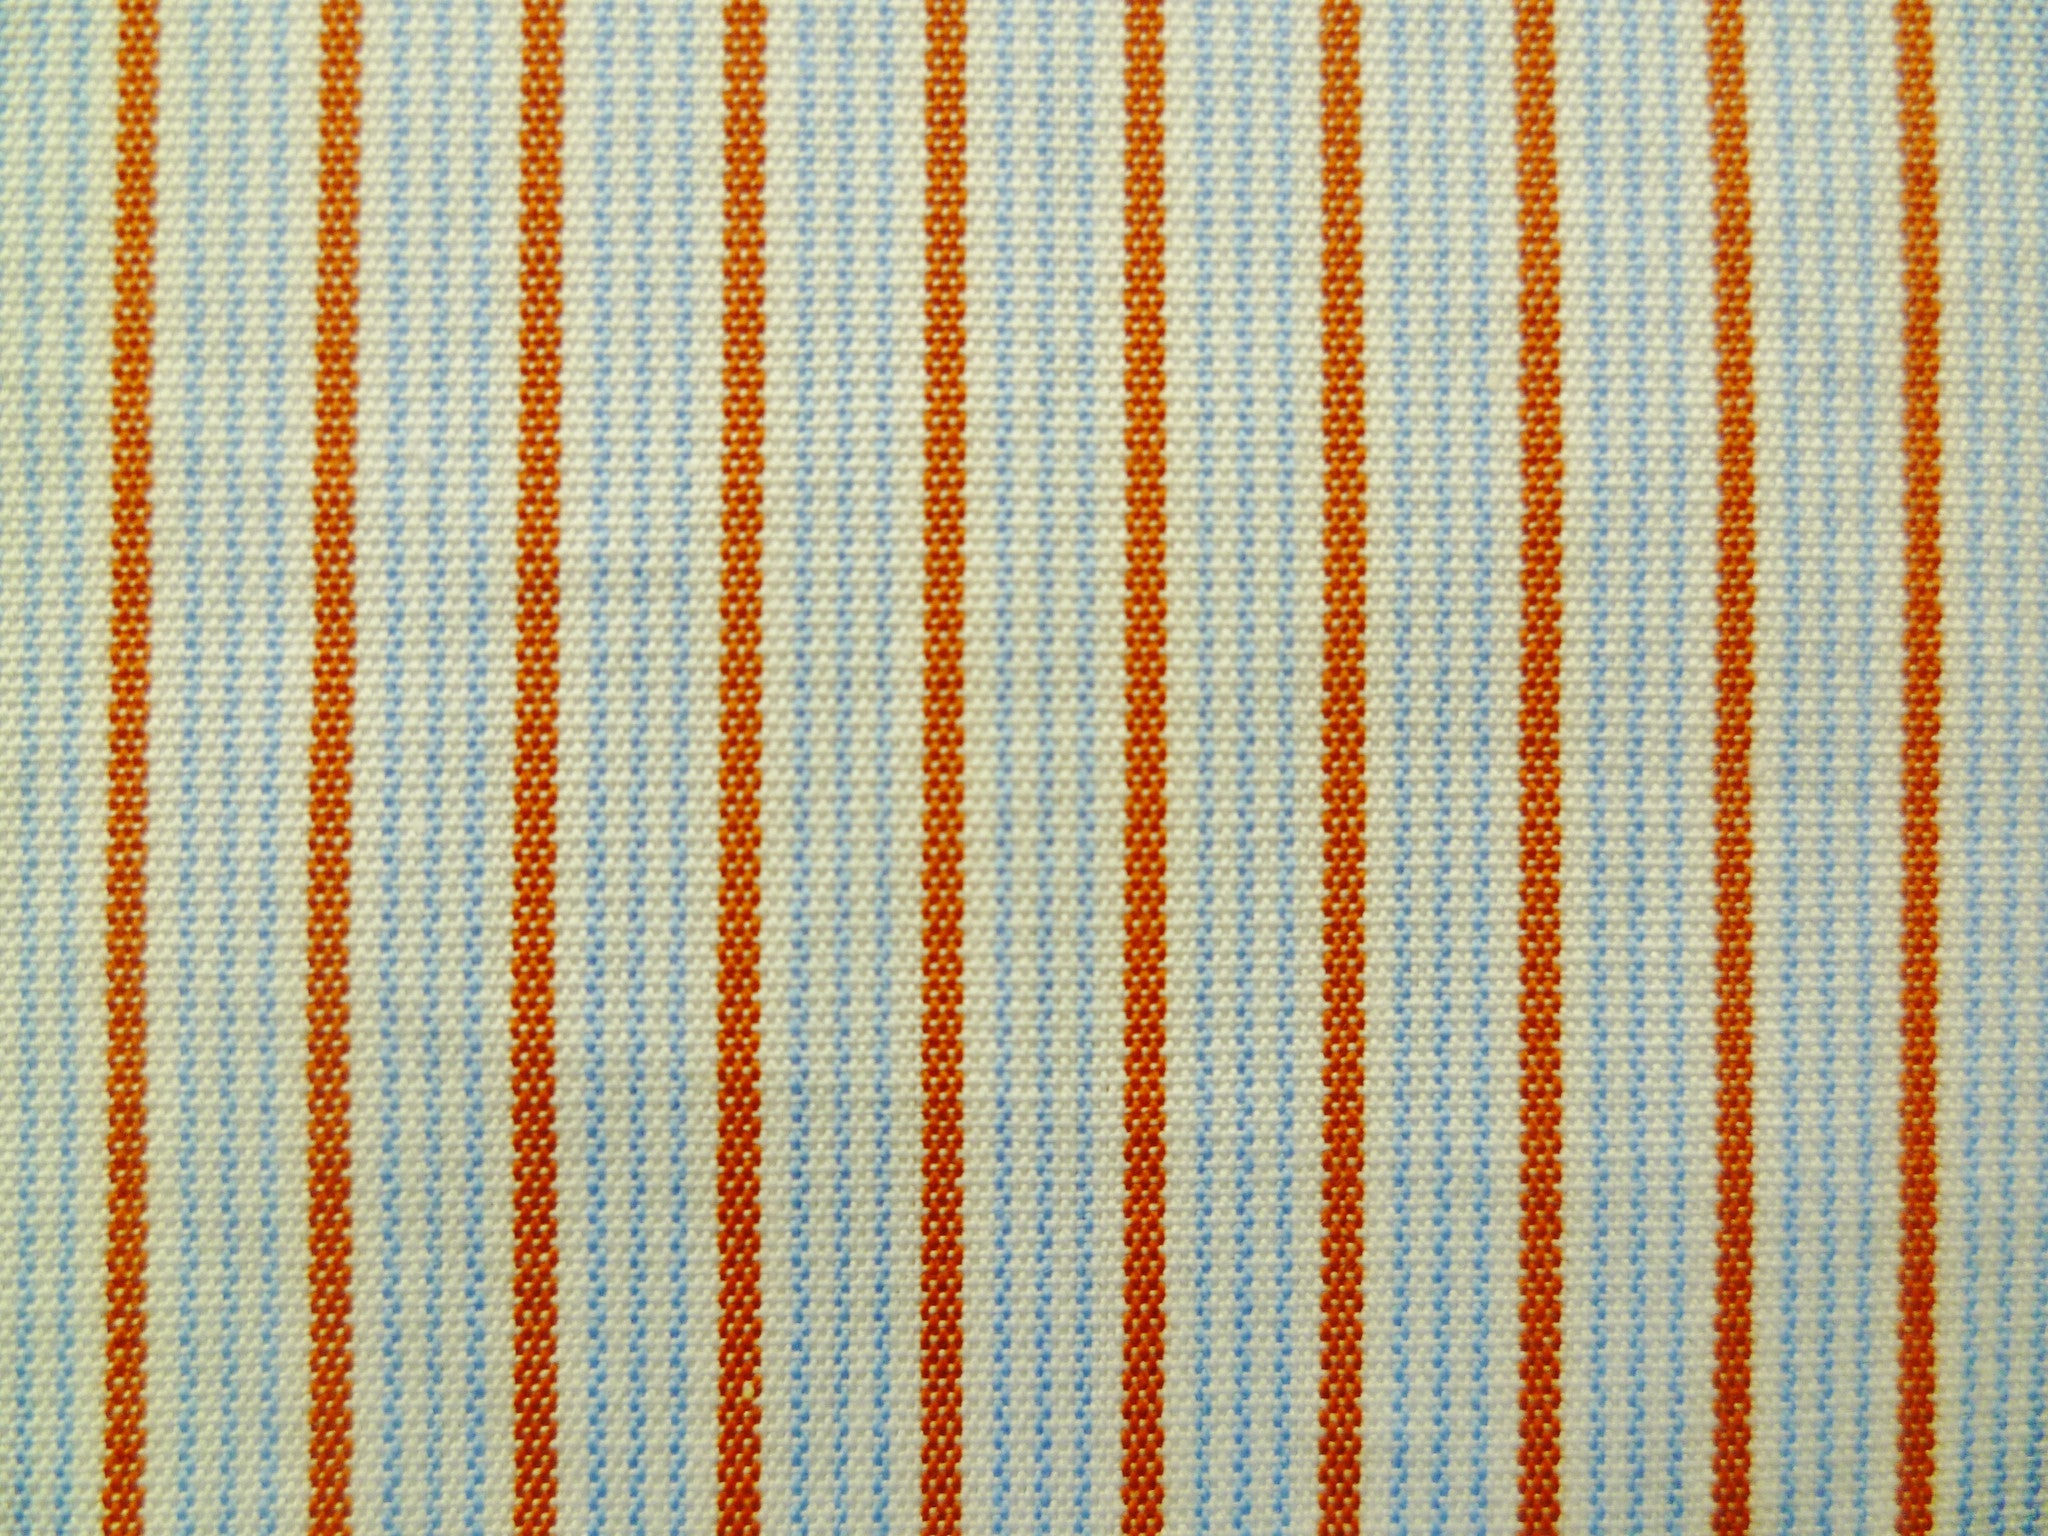 Red-Orange, Baby Blue and White Multi-striped Cotton